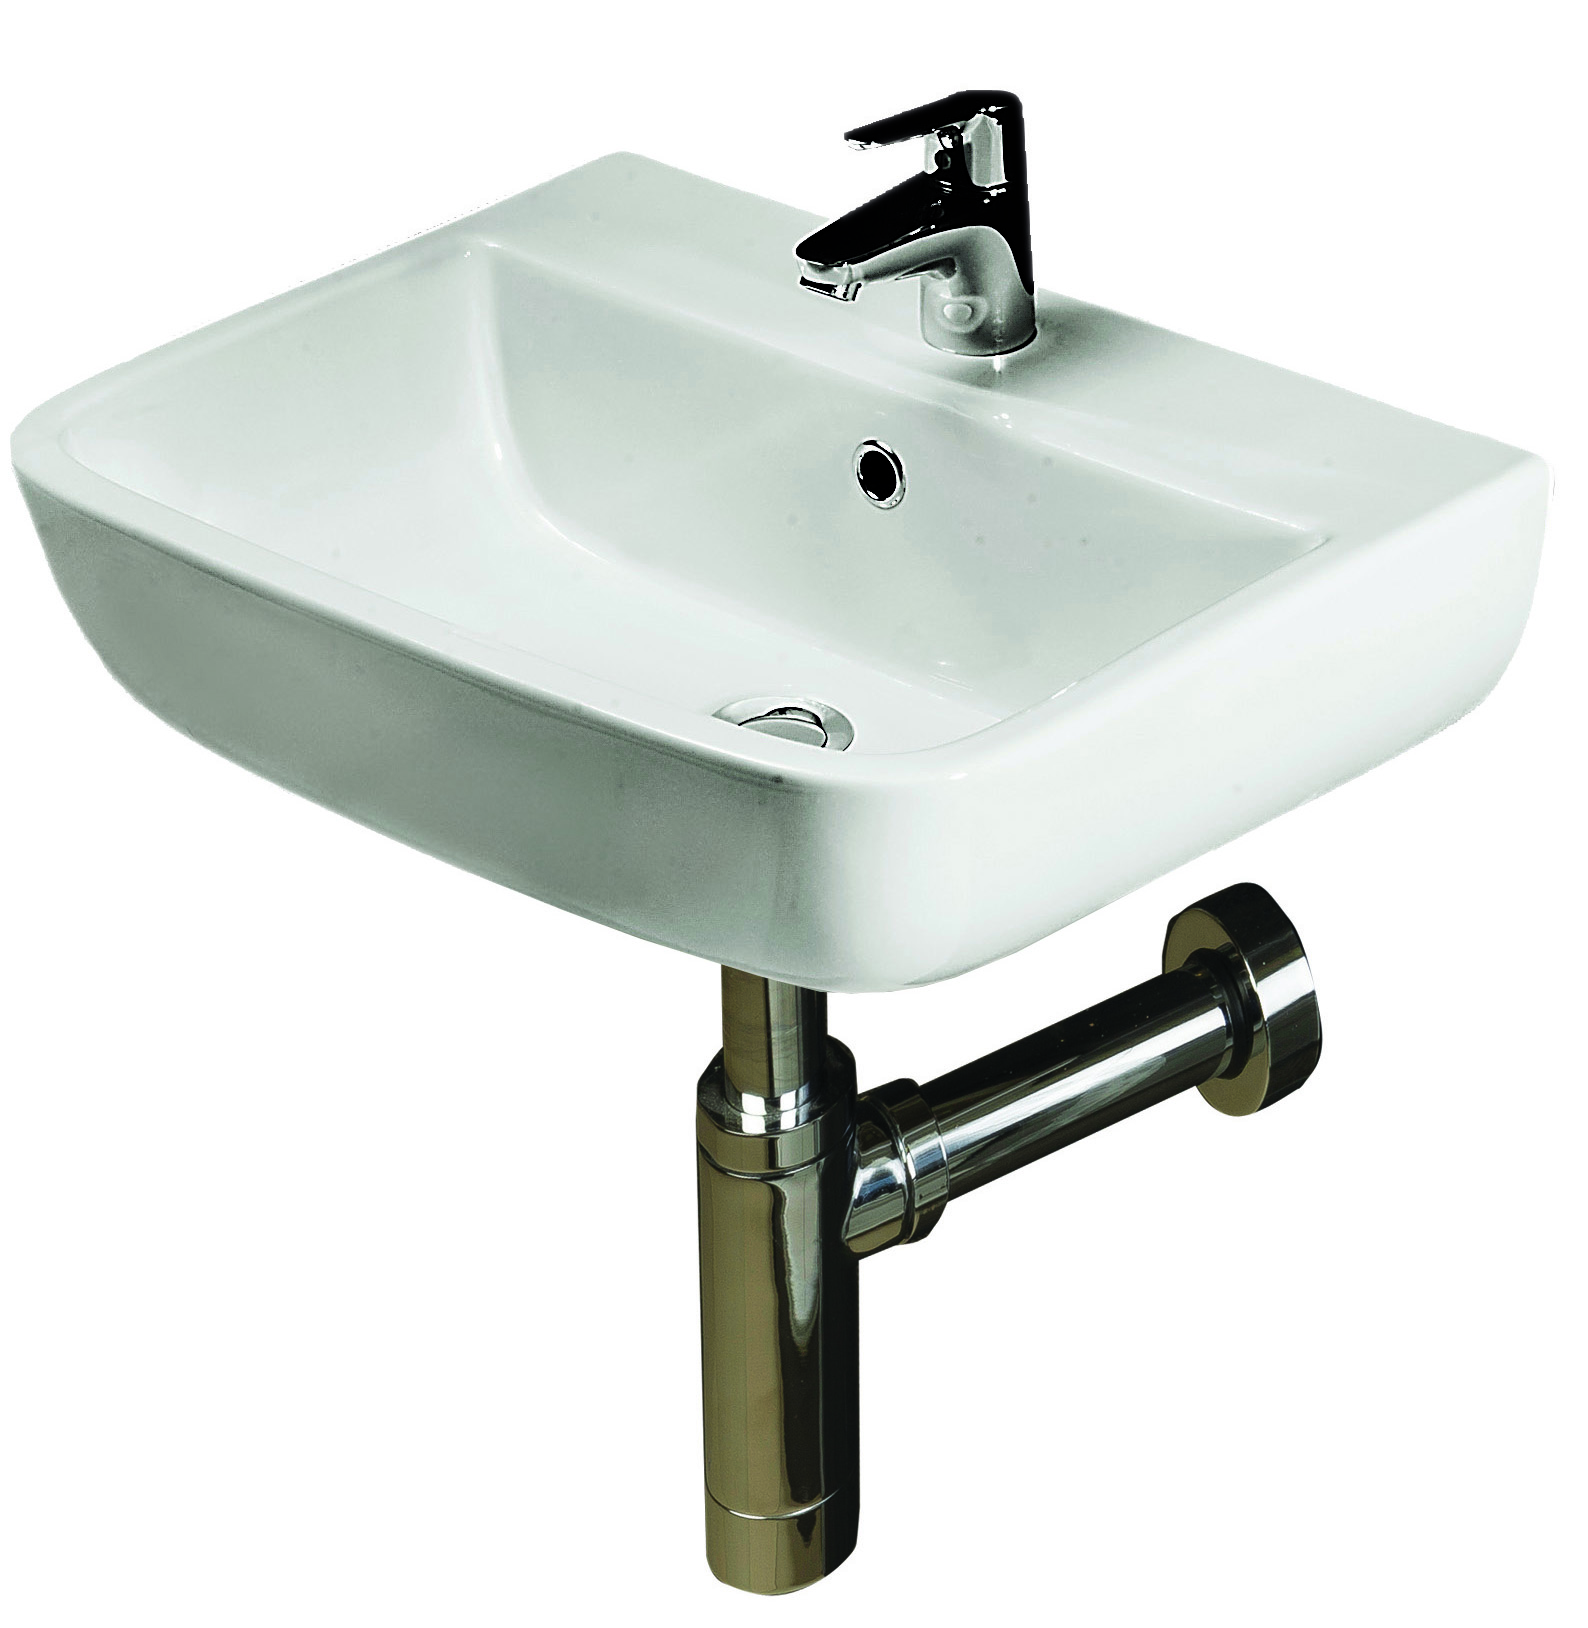 RAK Series 600 Basin 40cm - 1 Tap Hole